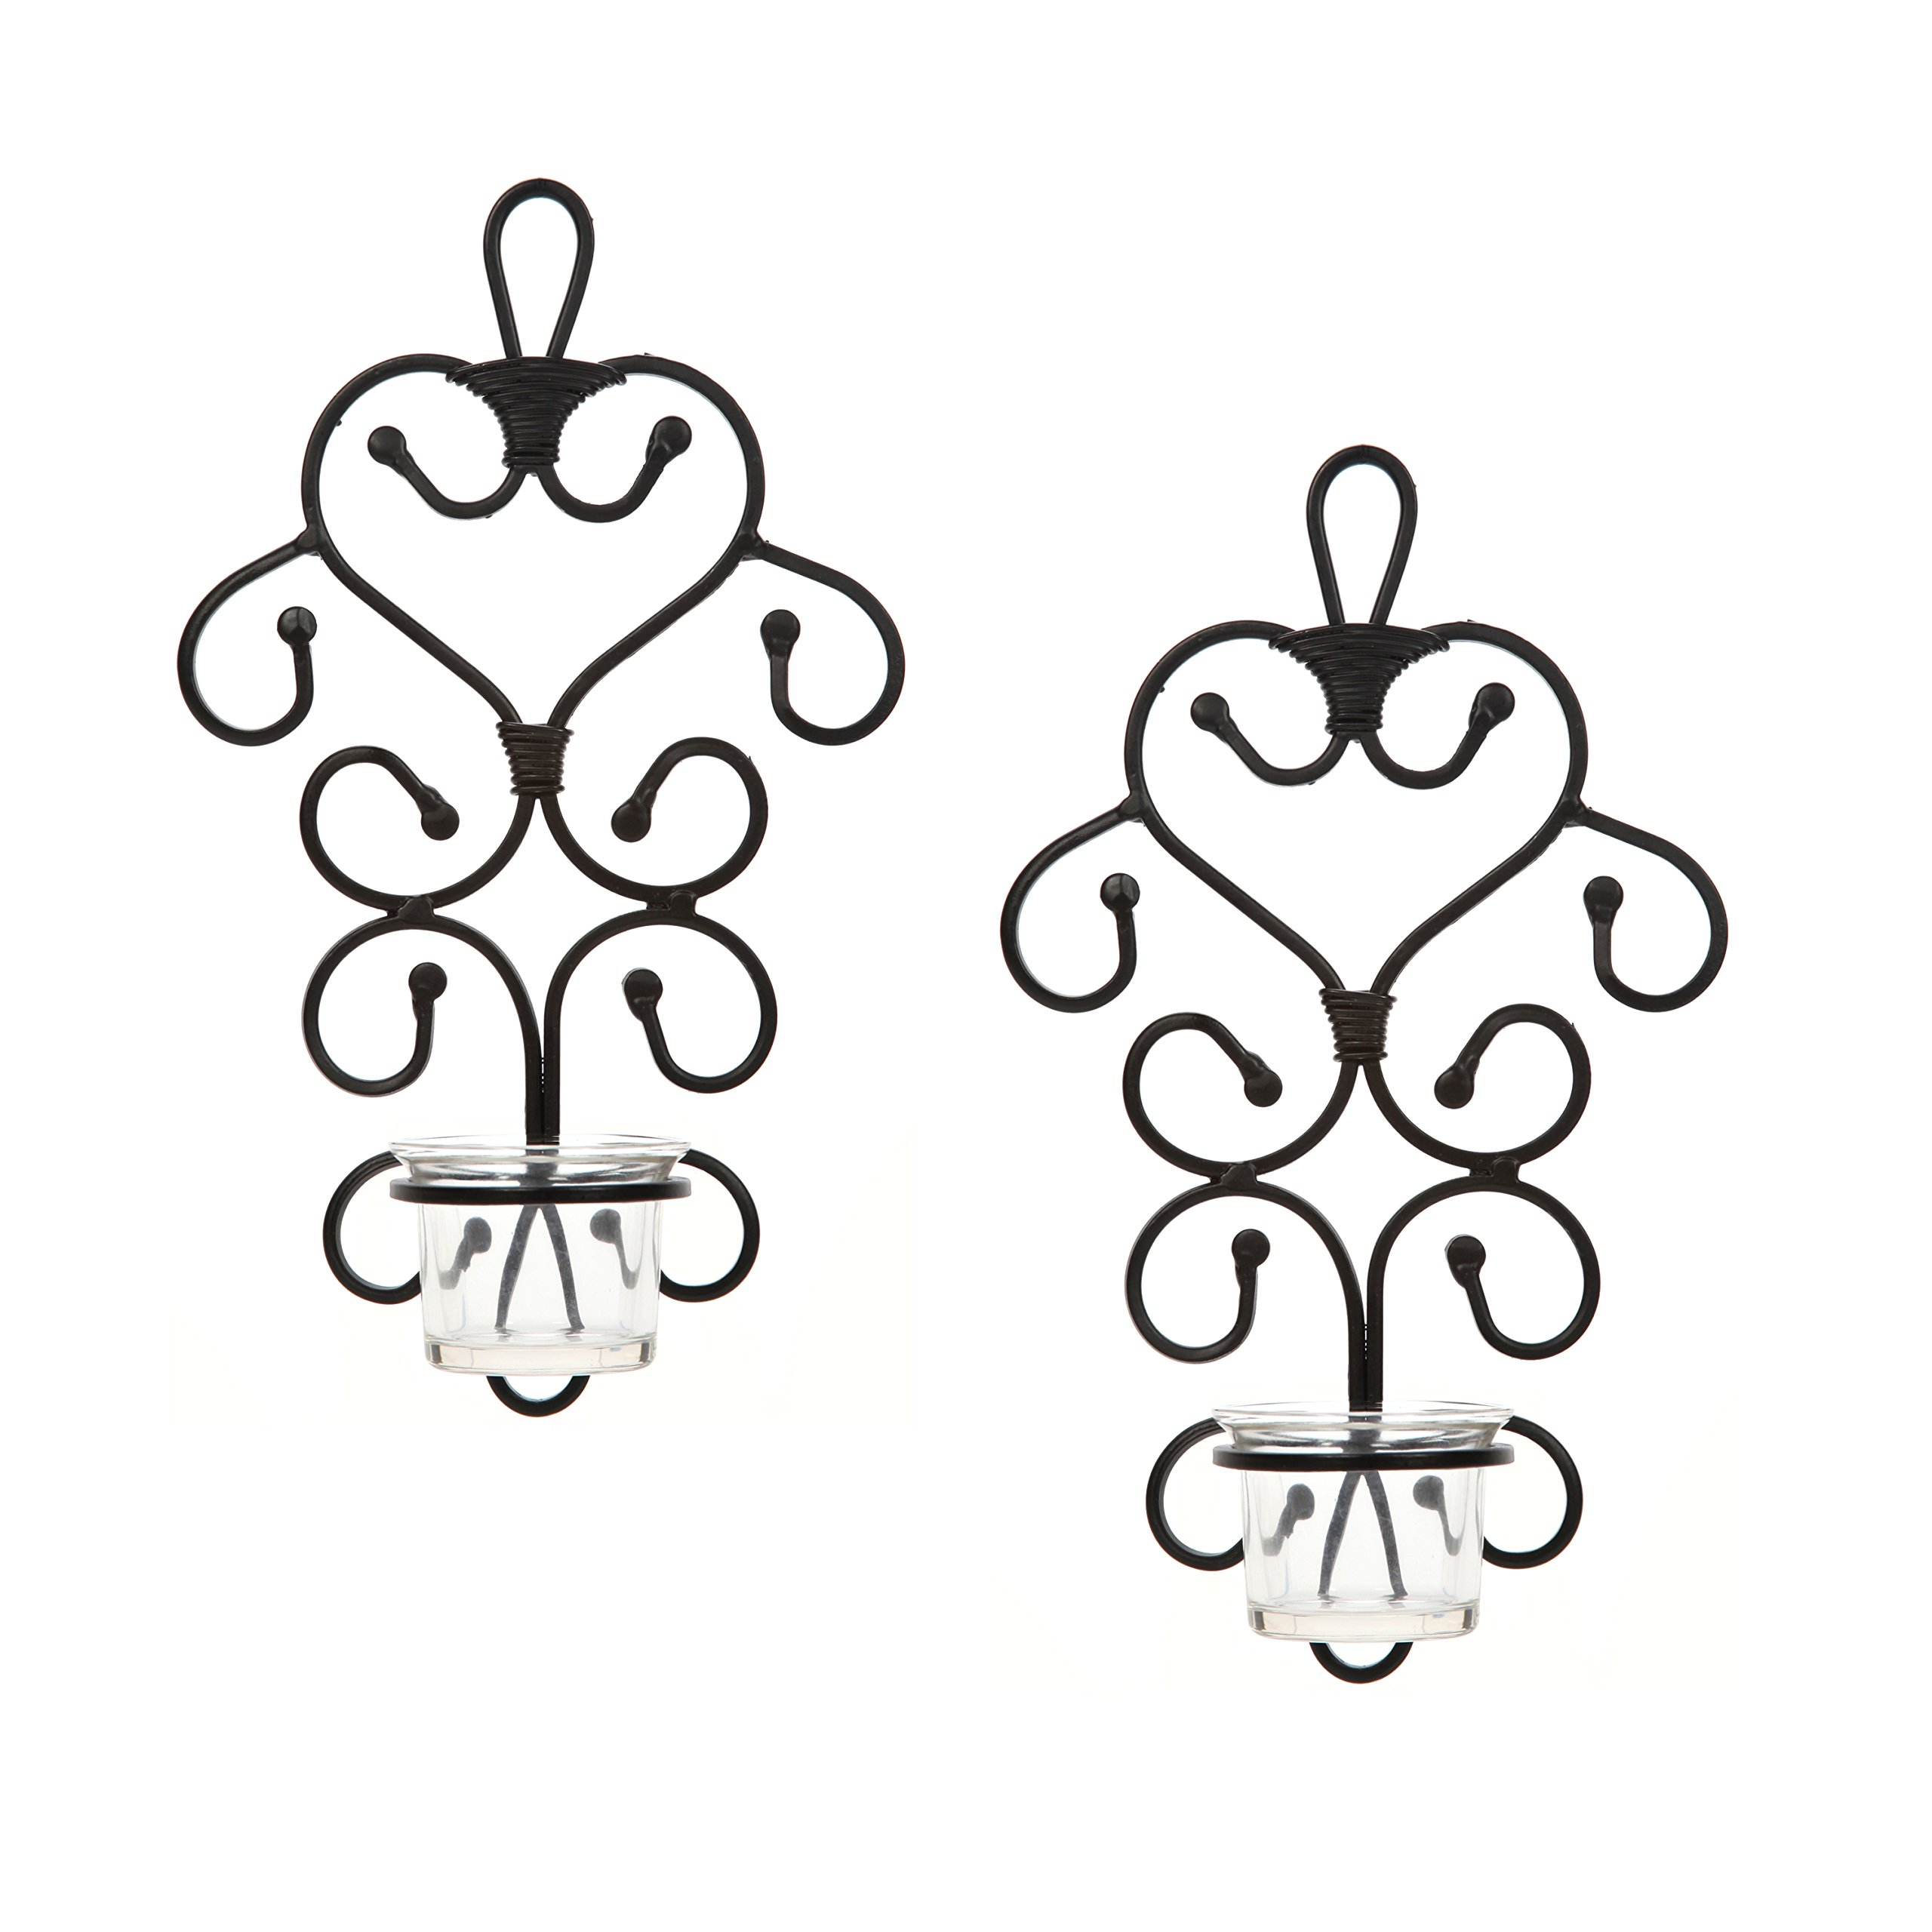 Hosley Set of 2 Iron Wall Art Tea Light Candle Sconces Plaque- 10.6'' High. Ideal Gift for Wedding, Bridal, Party, Reiki, Spa and Aromatherapy Candle Gardens O3